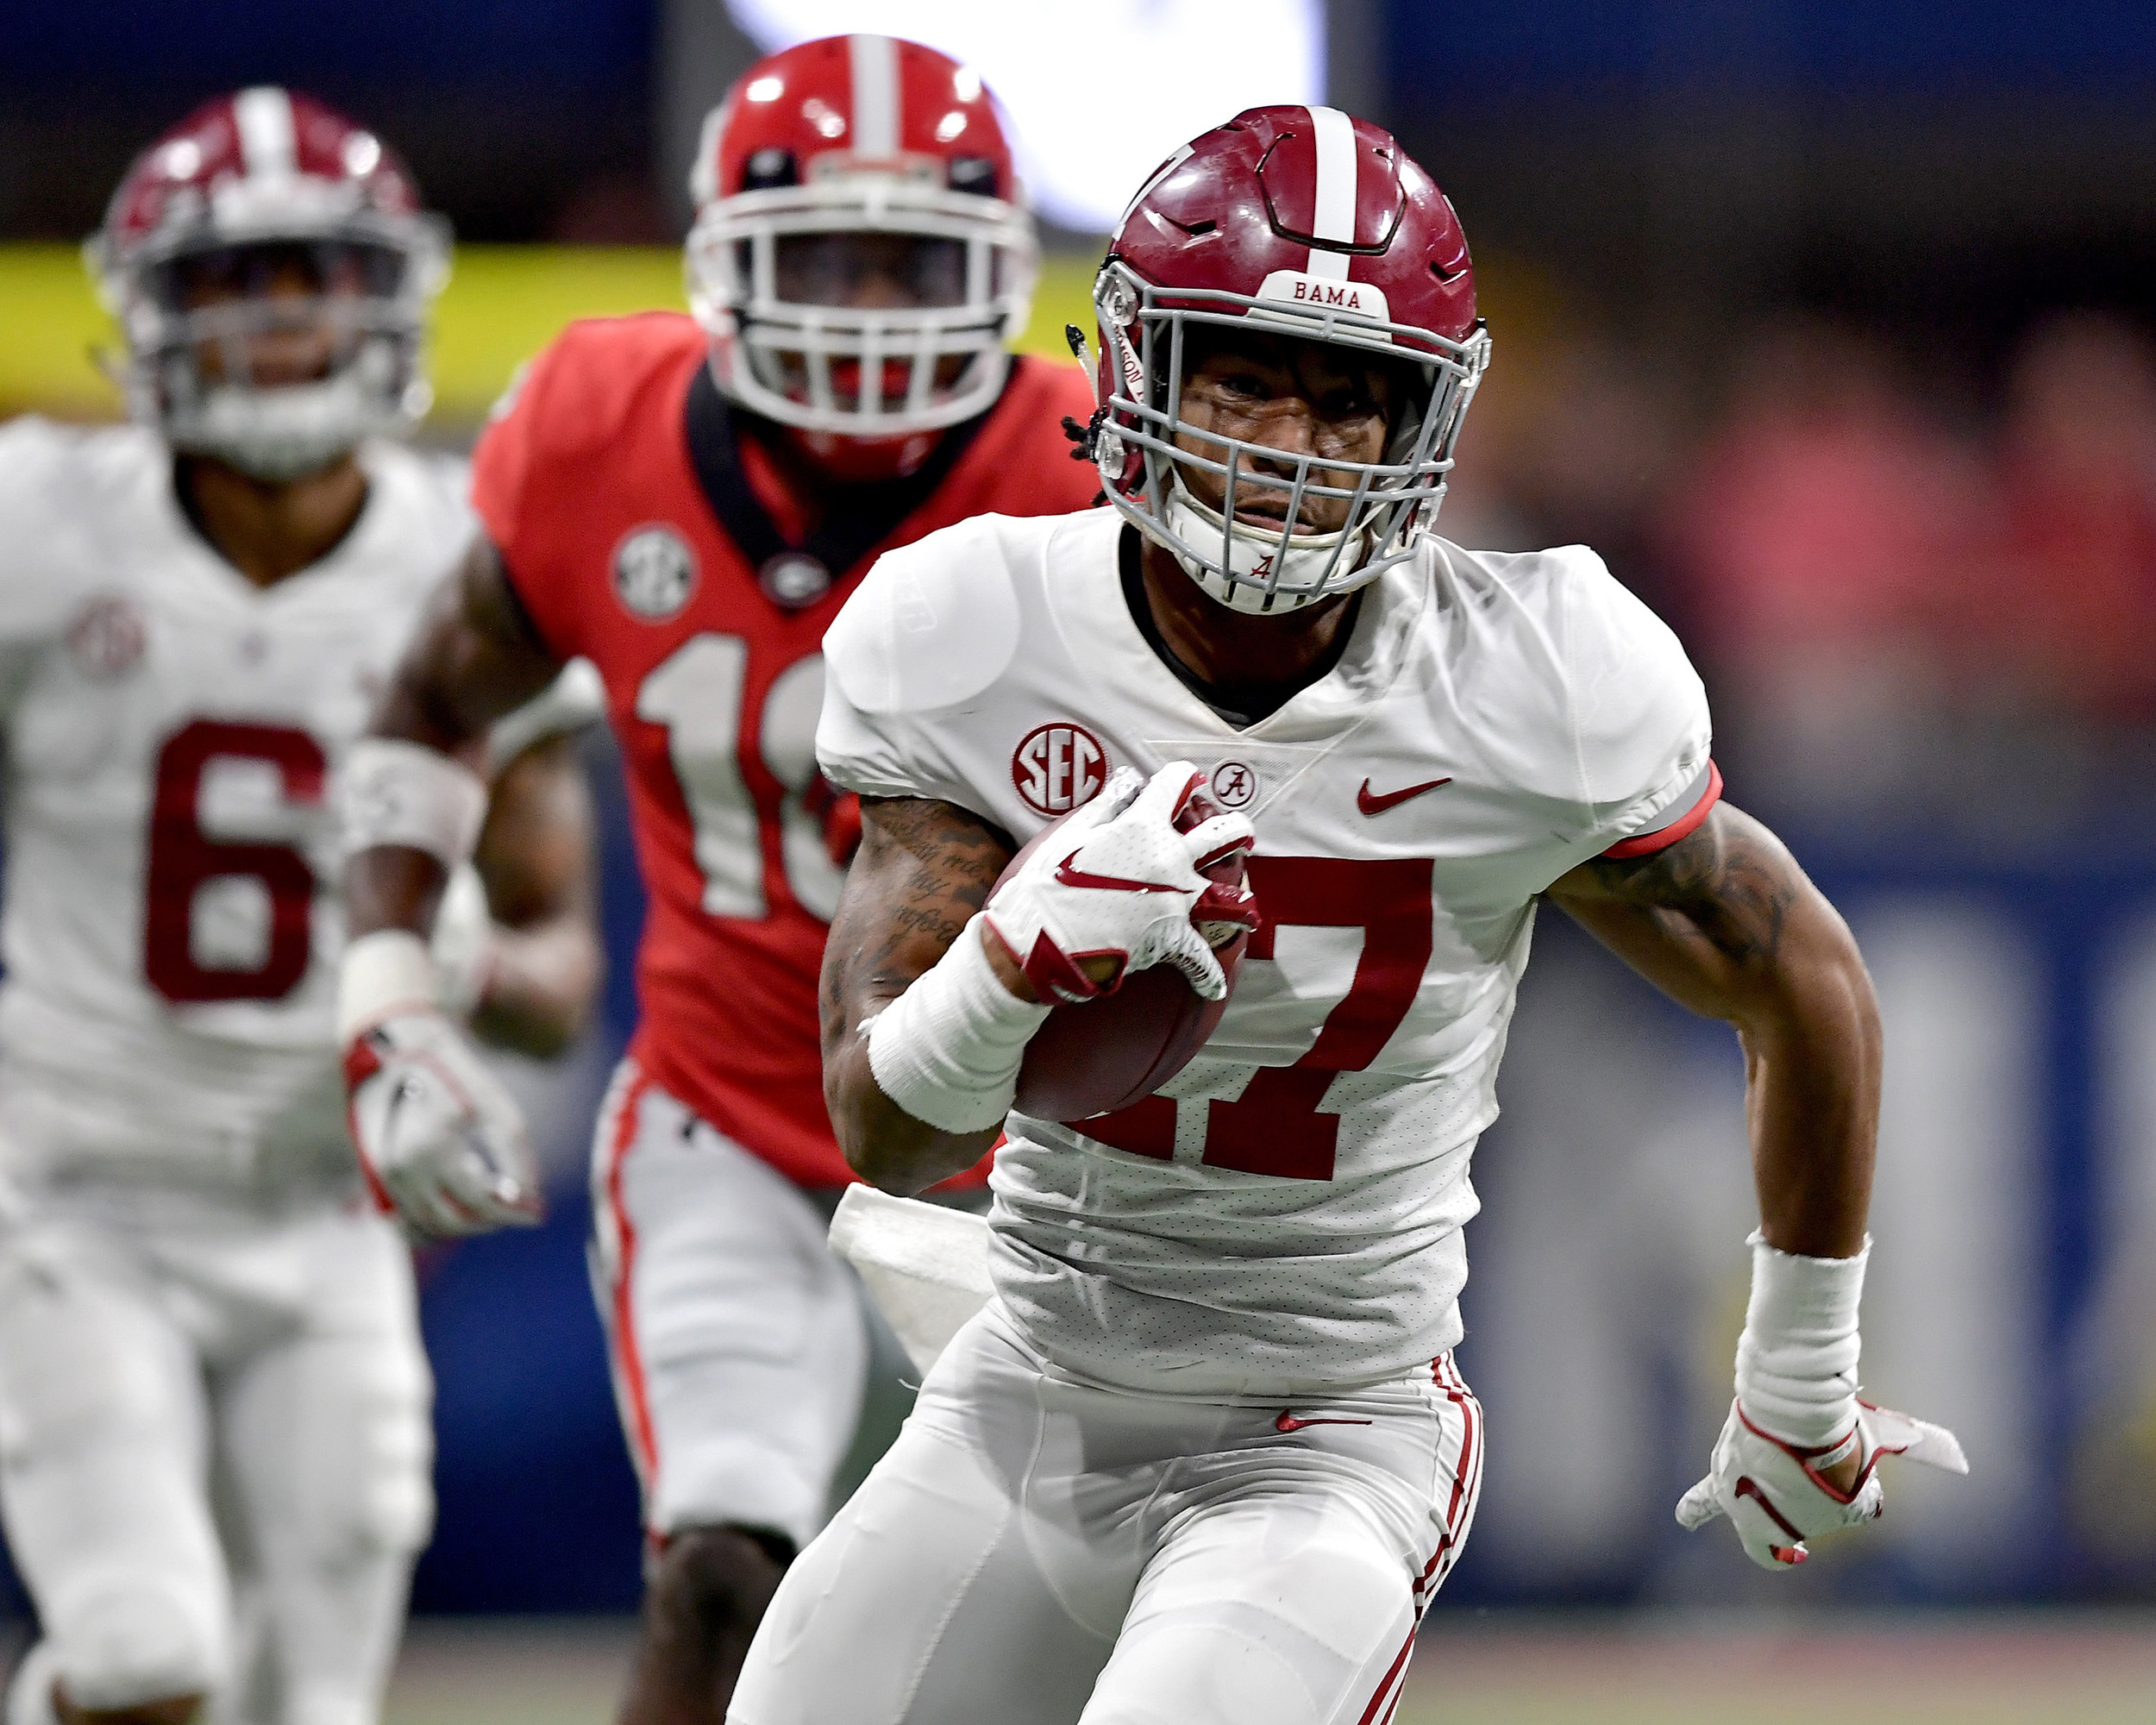 Alabama Crimson Tide wide receiver Jaylen Waddle (17) on his way to touchdown during the second half of the 2018 SEC Championship football game against the Georgia Bulldogs at Mercedes-Benz Stadium in Atlanta, Ga., on Dec. 1, 2018. Alabama wins 35-28. (Photo by Lee Walls)